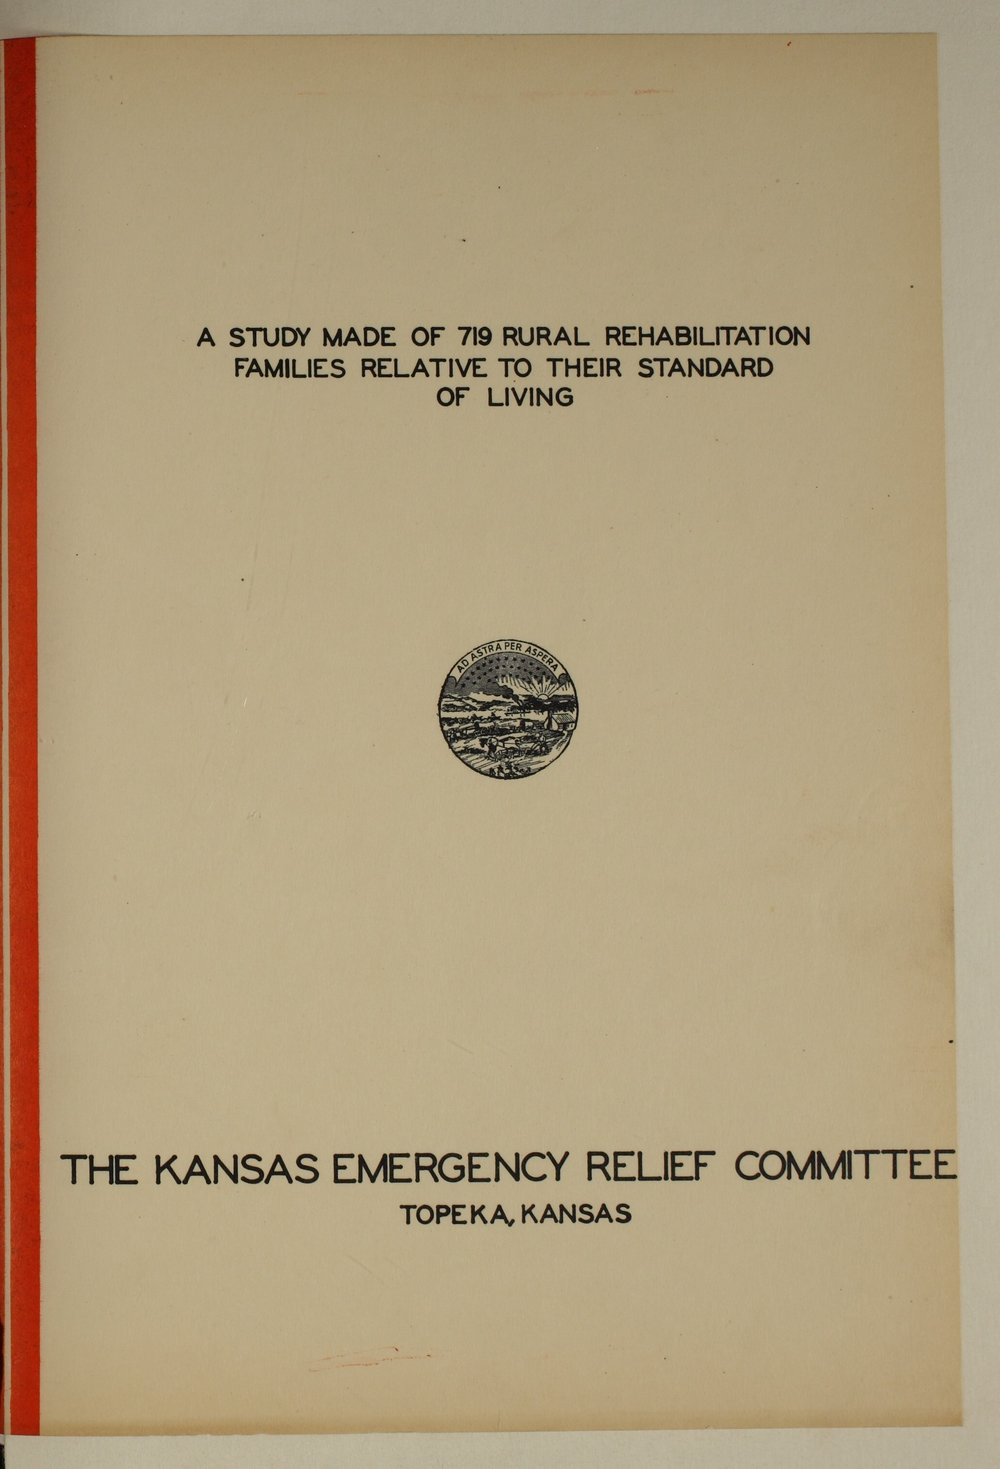 A study made of 719 rural rehabilitation families relative to their standard of living - Title Page